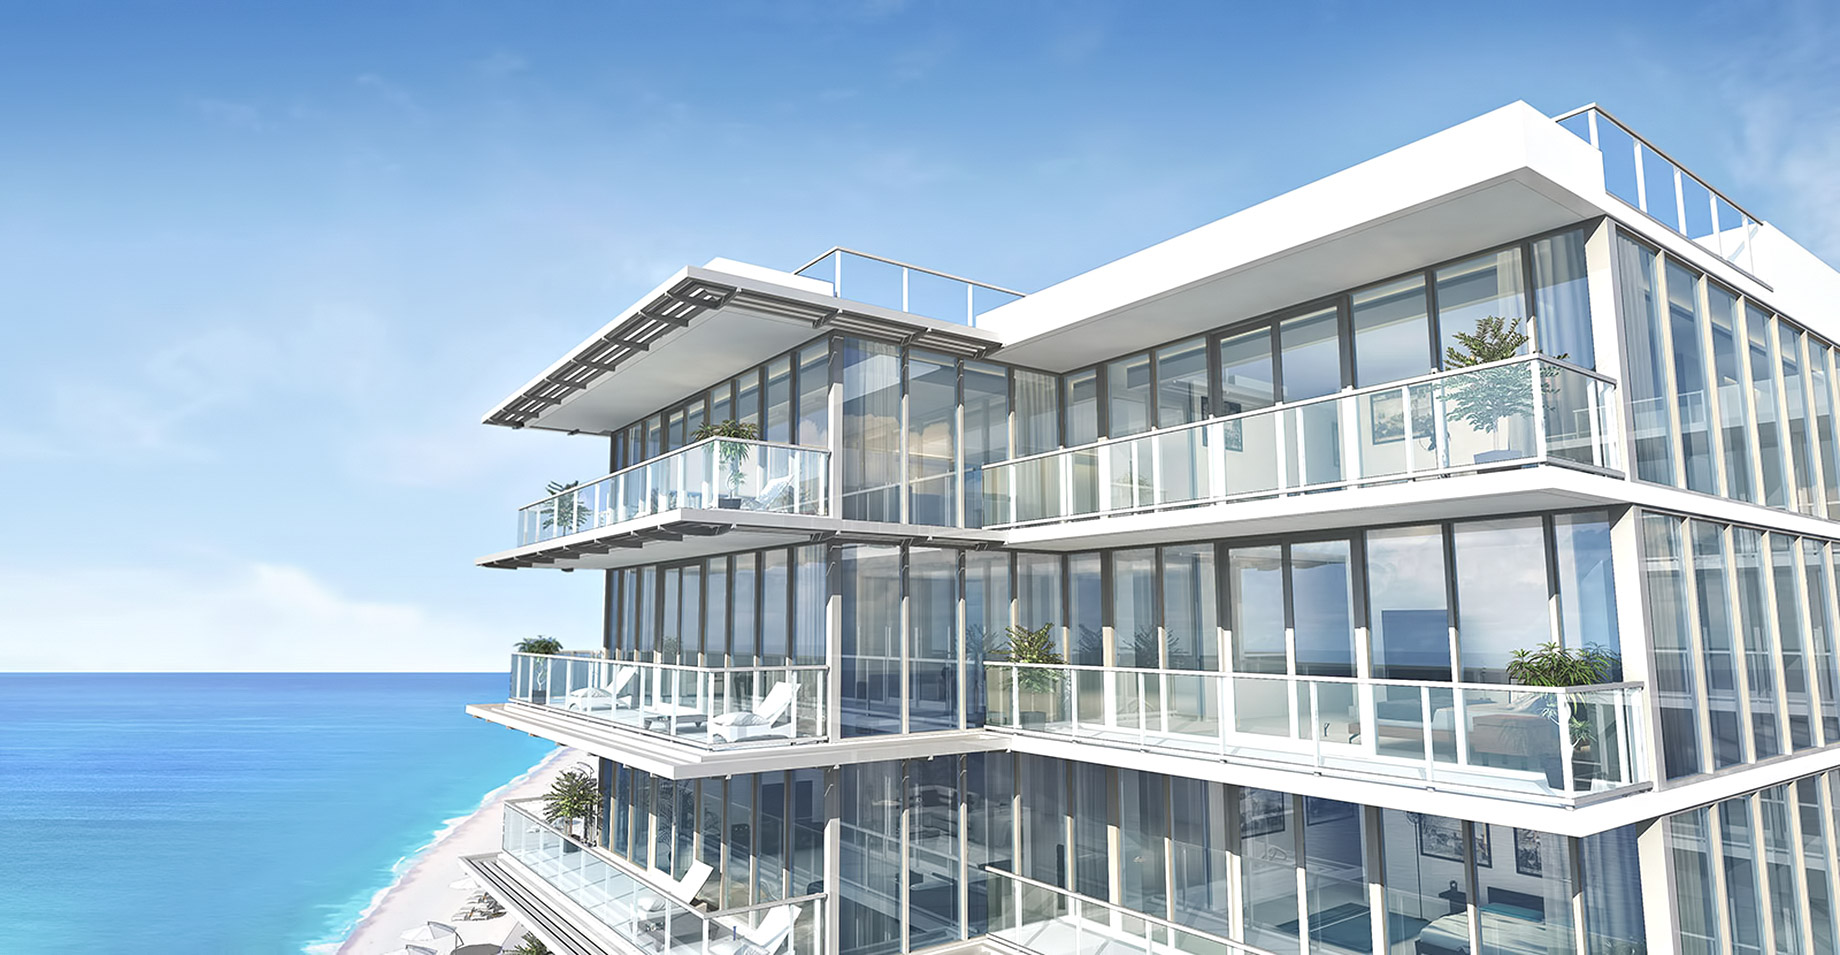 Amenity Rich Real Estate - Florida Luxury Real Estate - The Appeal of a Second Home in Palm Beach